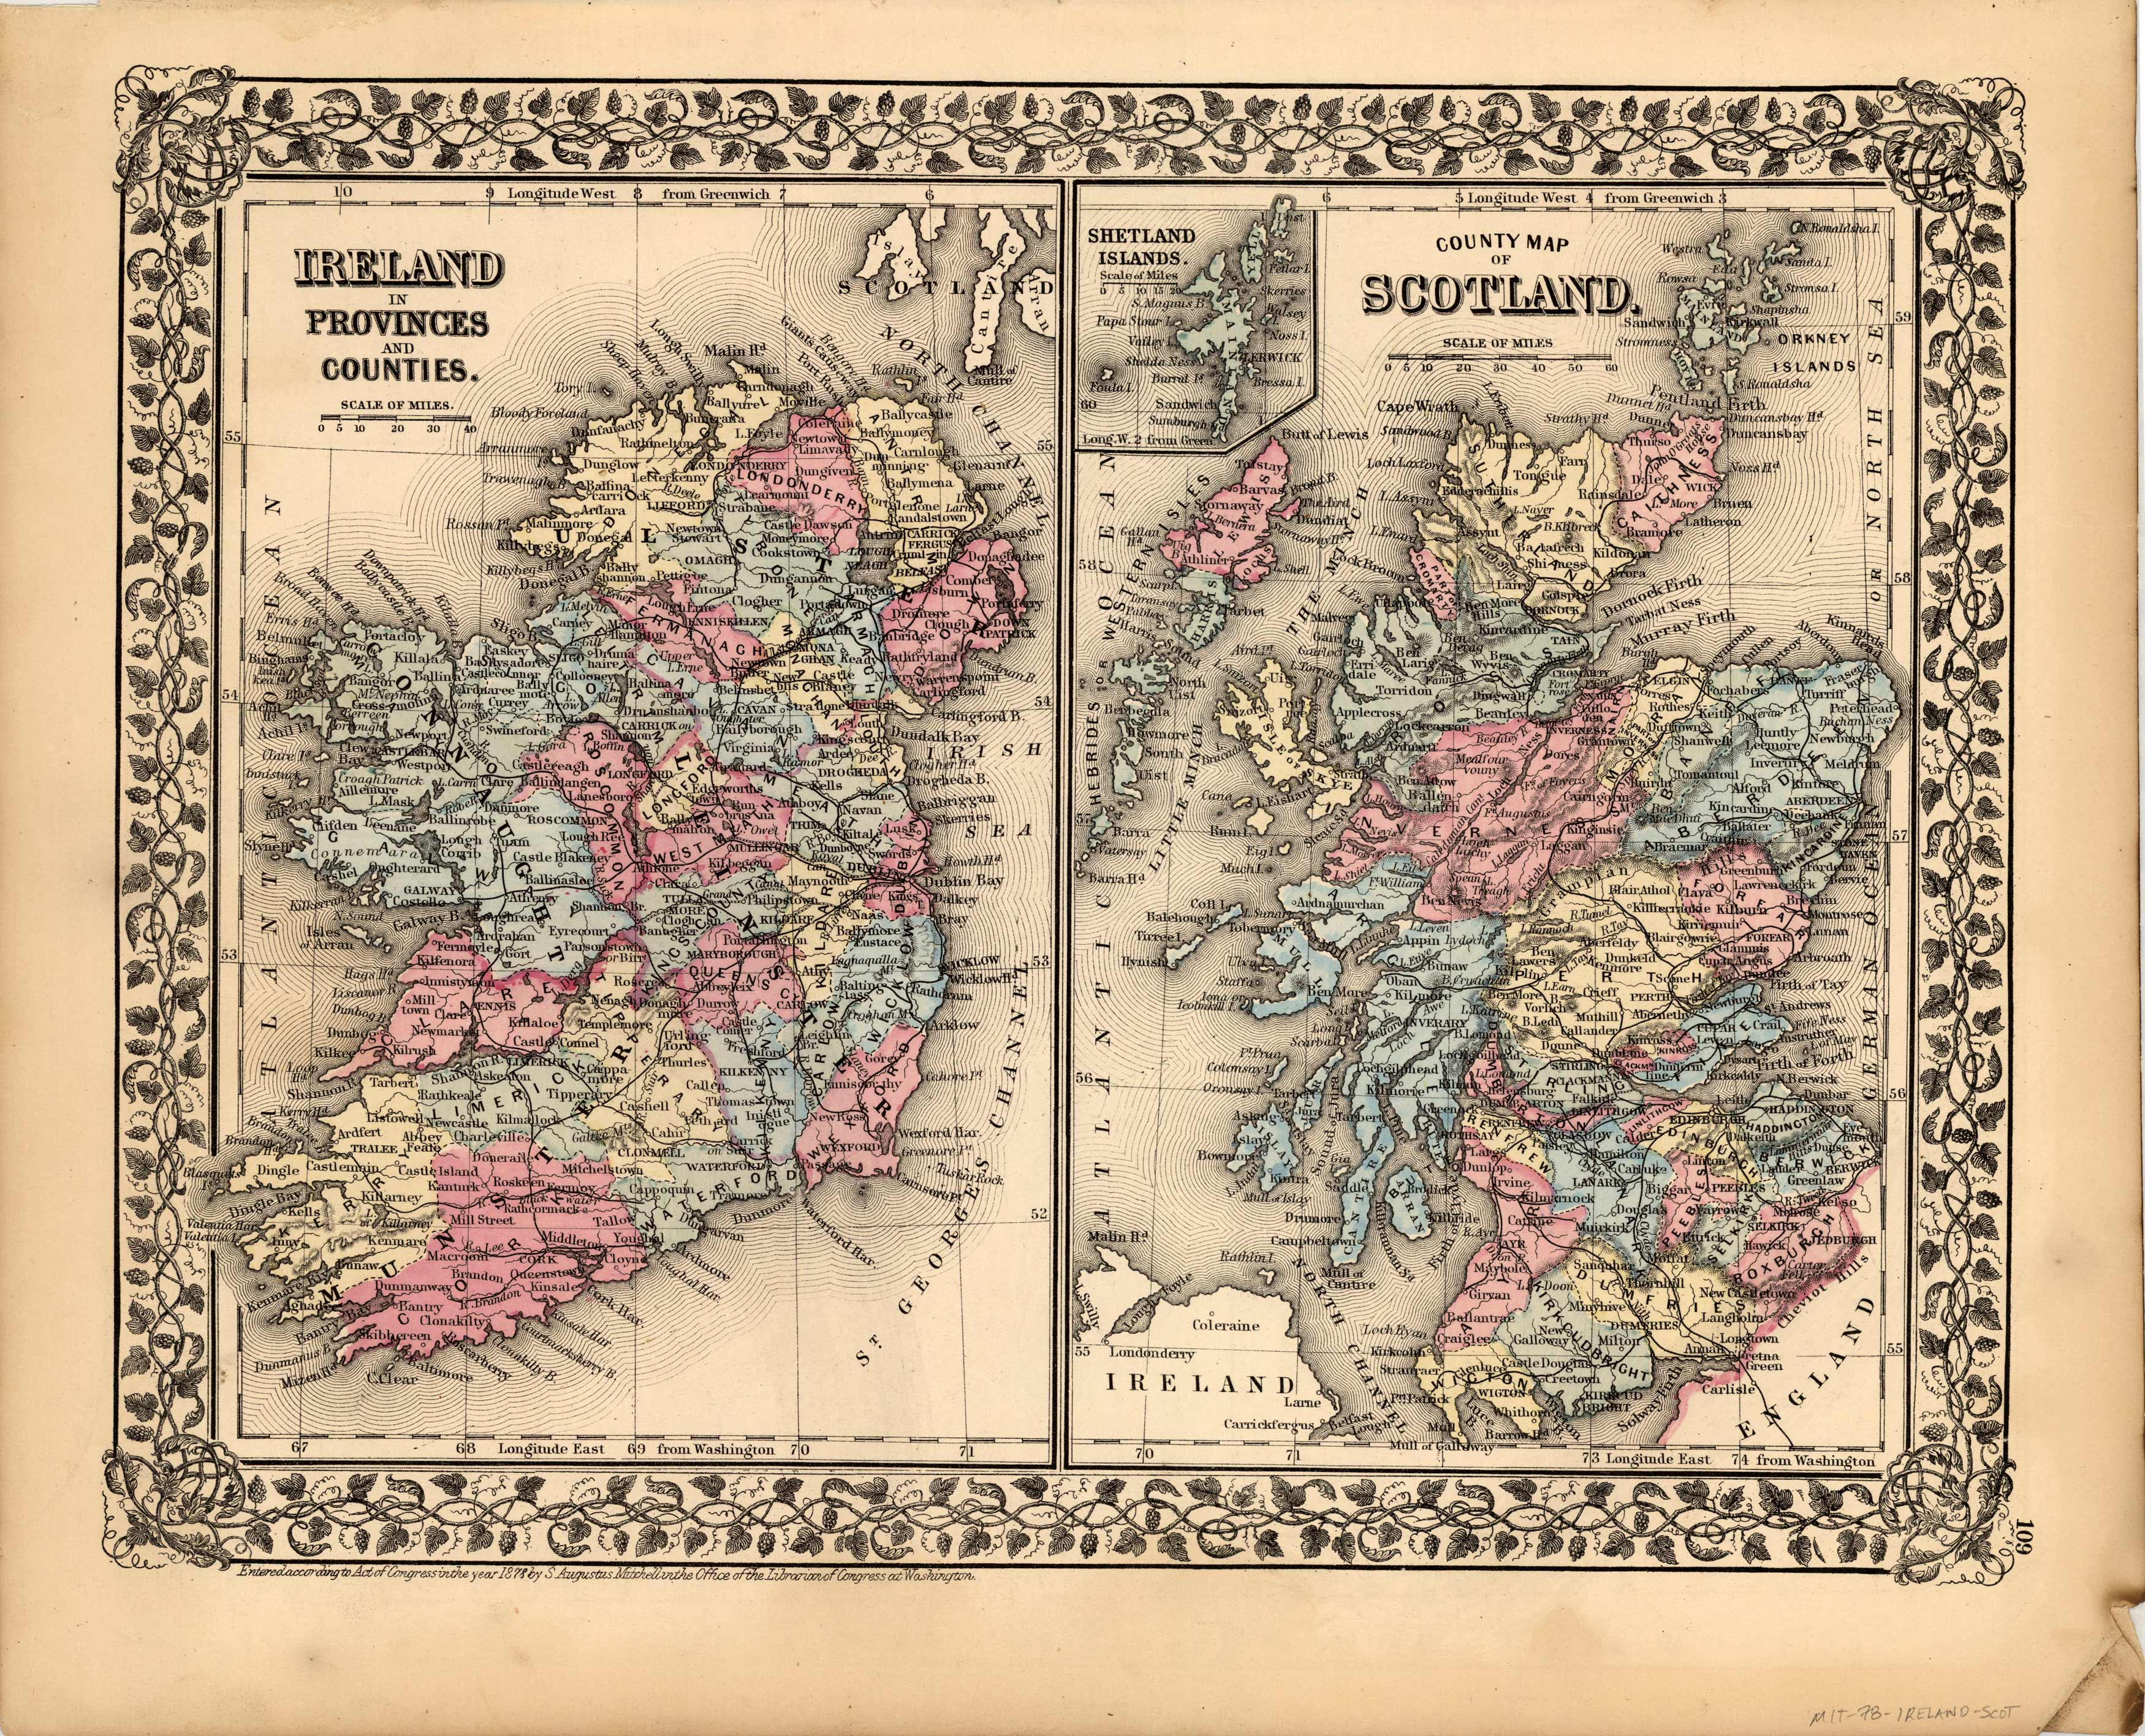 Ireland in Provinces and Counties - County Map of Scotland